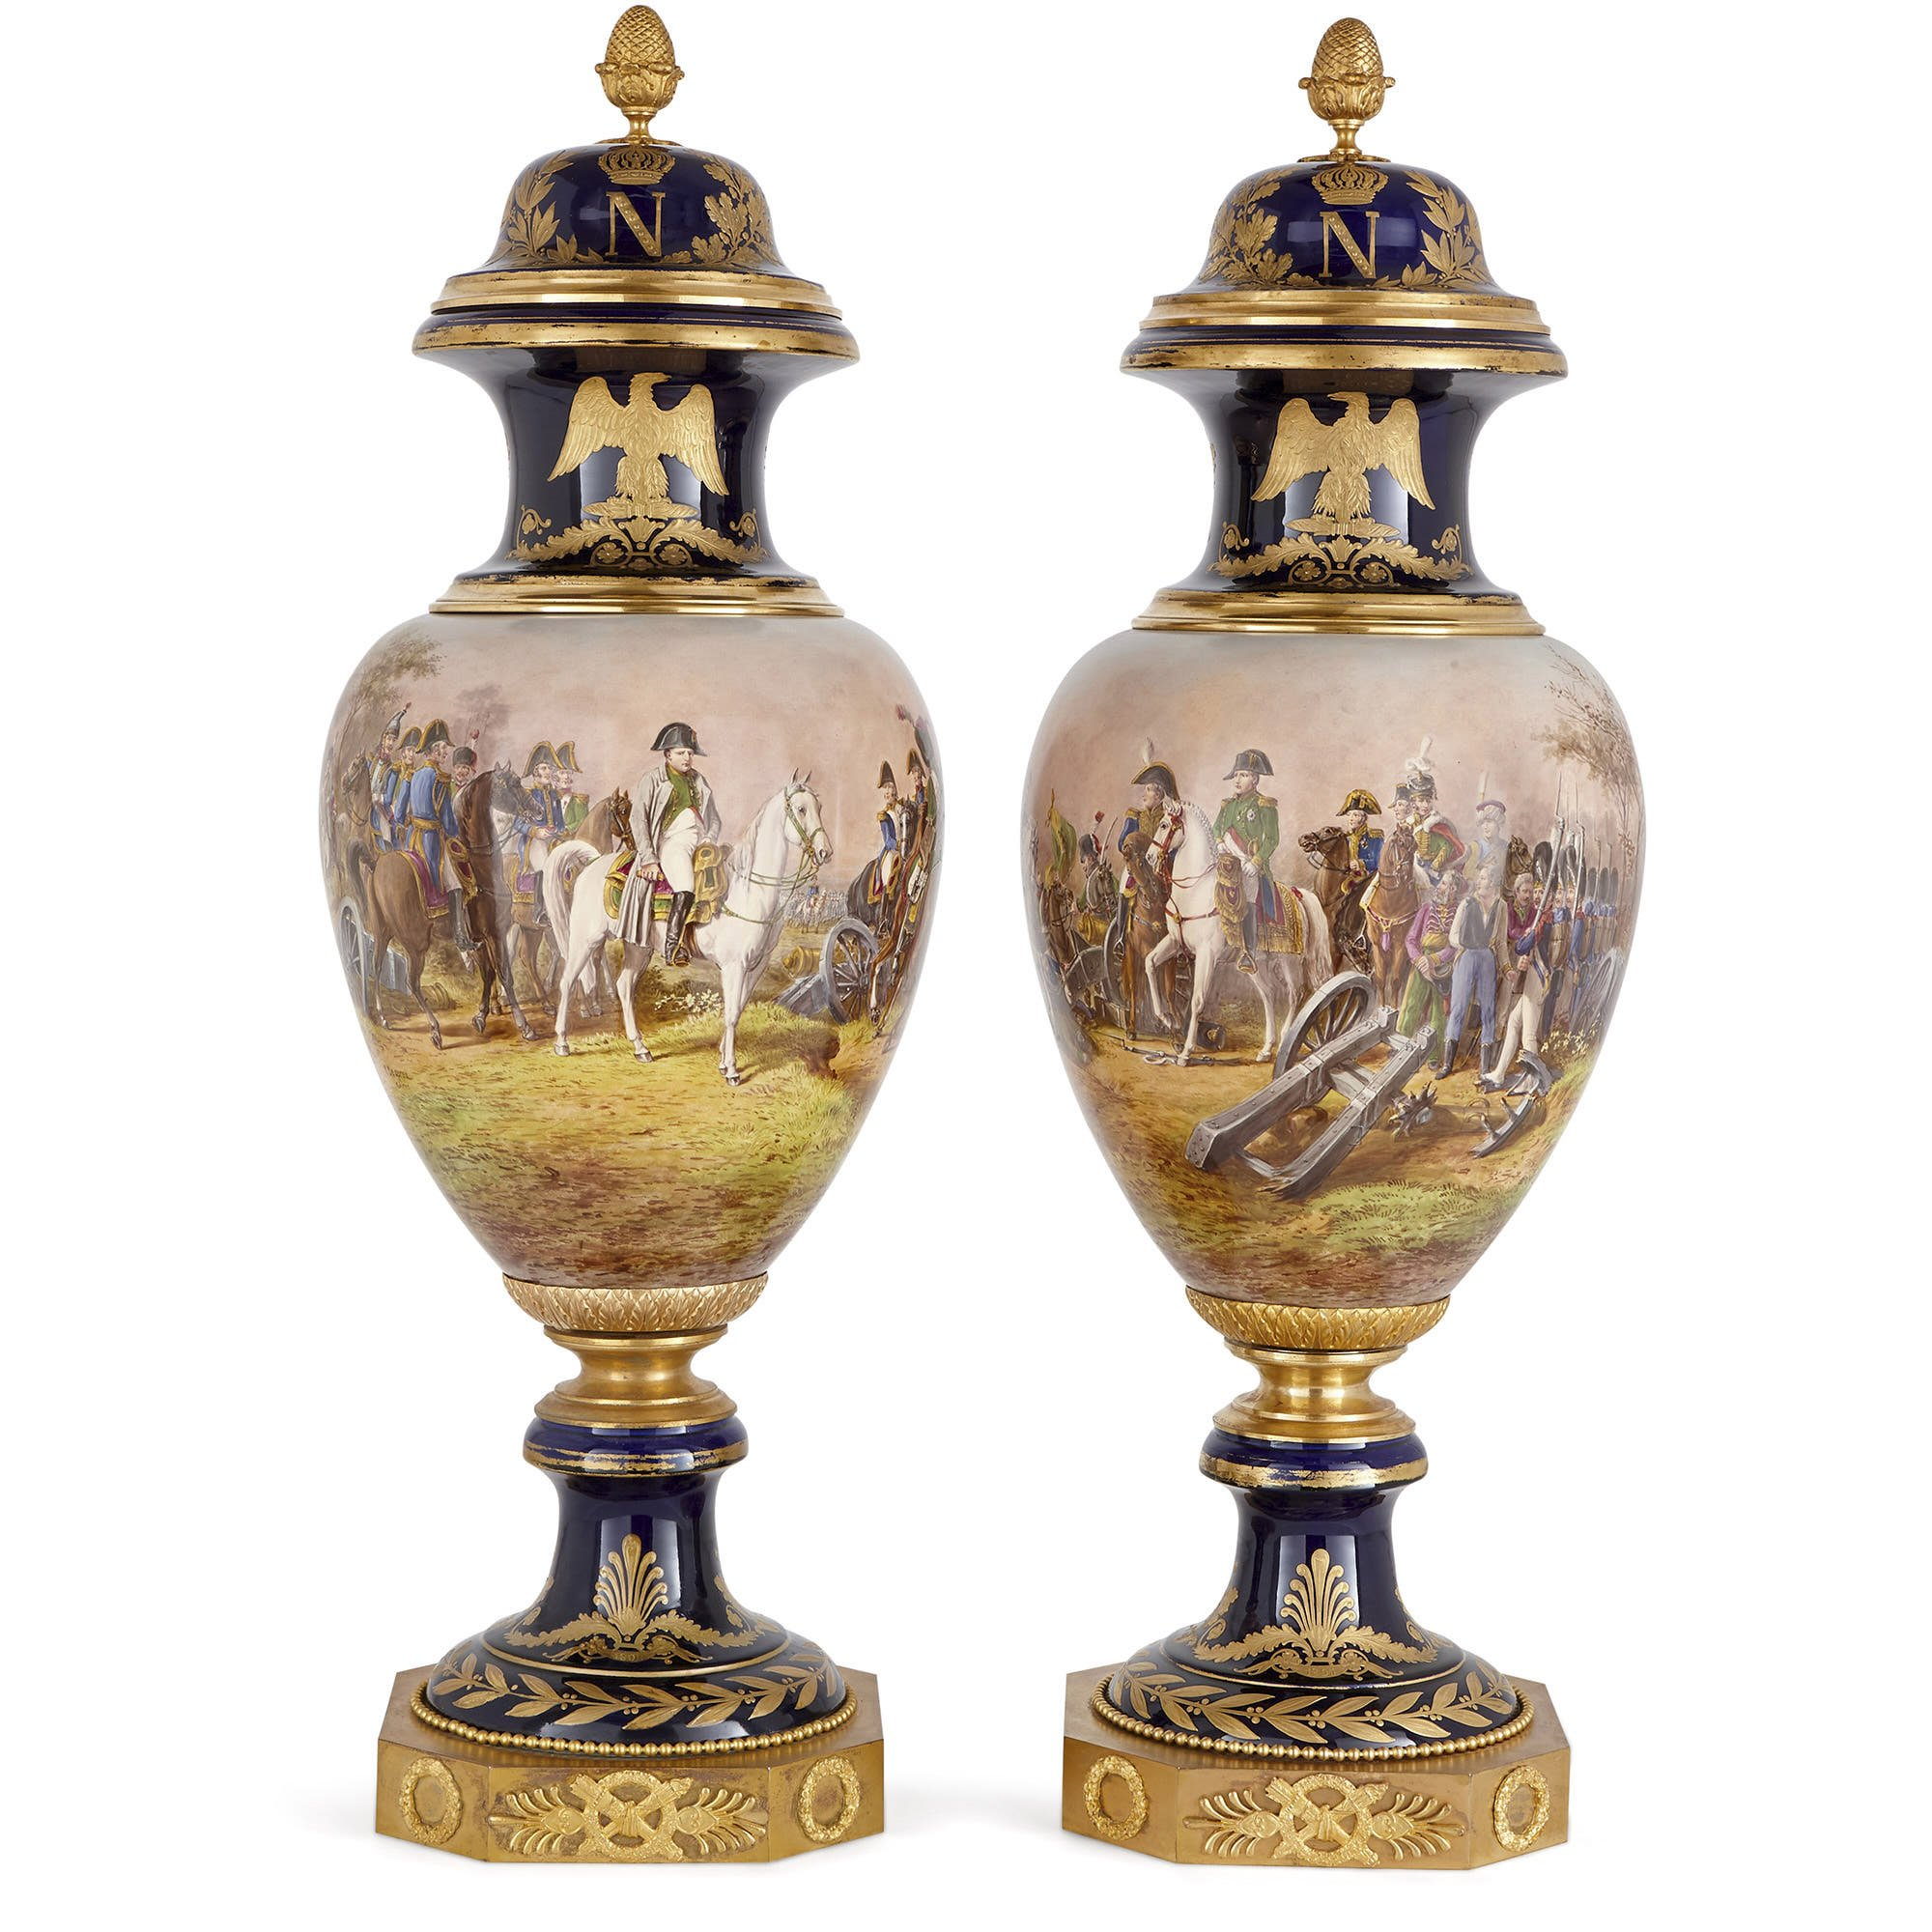 15832-two-large-sevres-style-porcelain-and-ormolu-napoleonic-vases-1-2000x.jpg